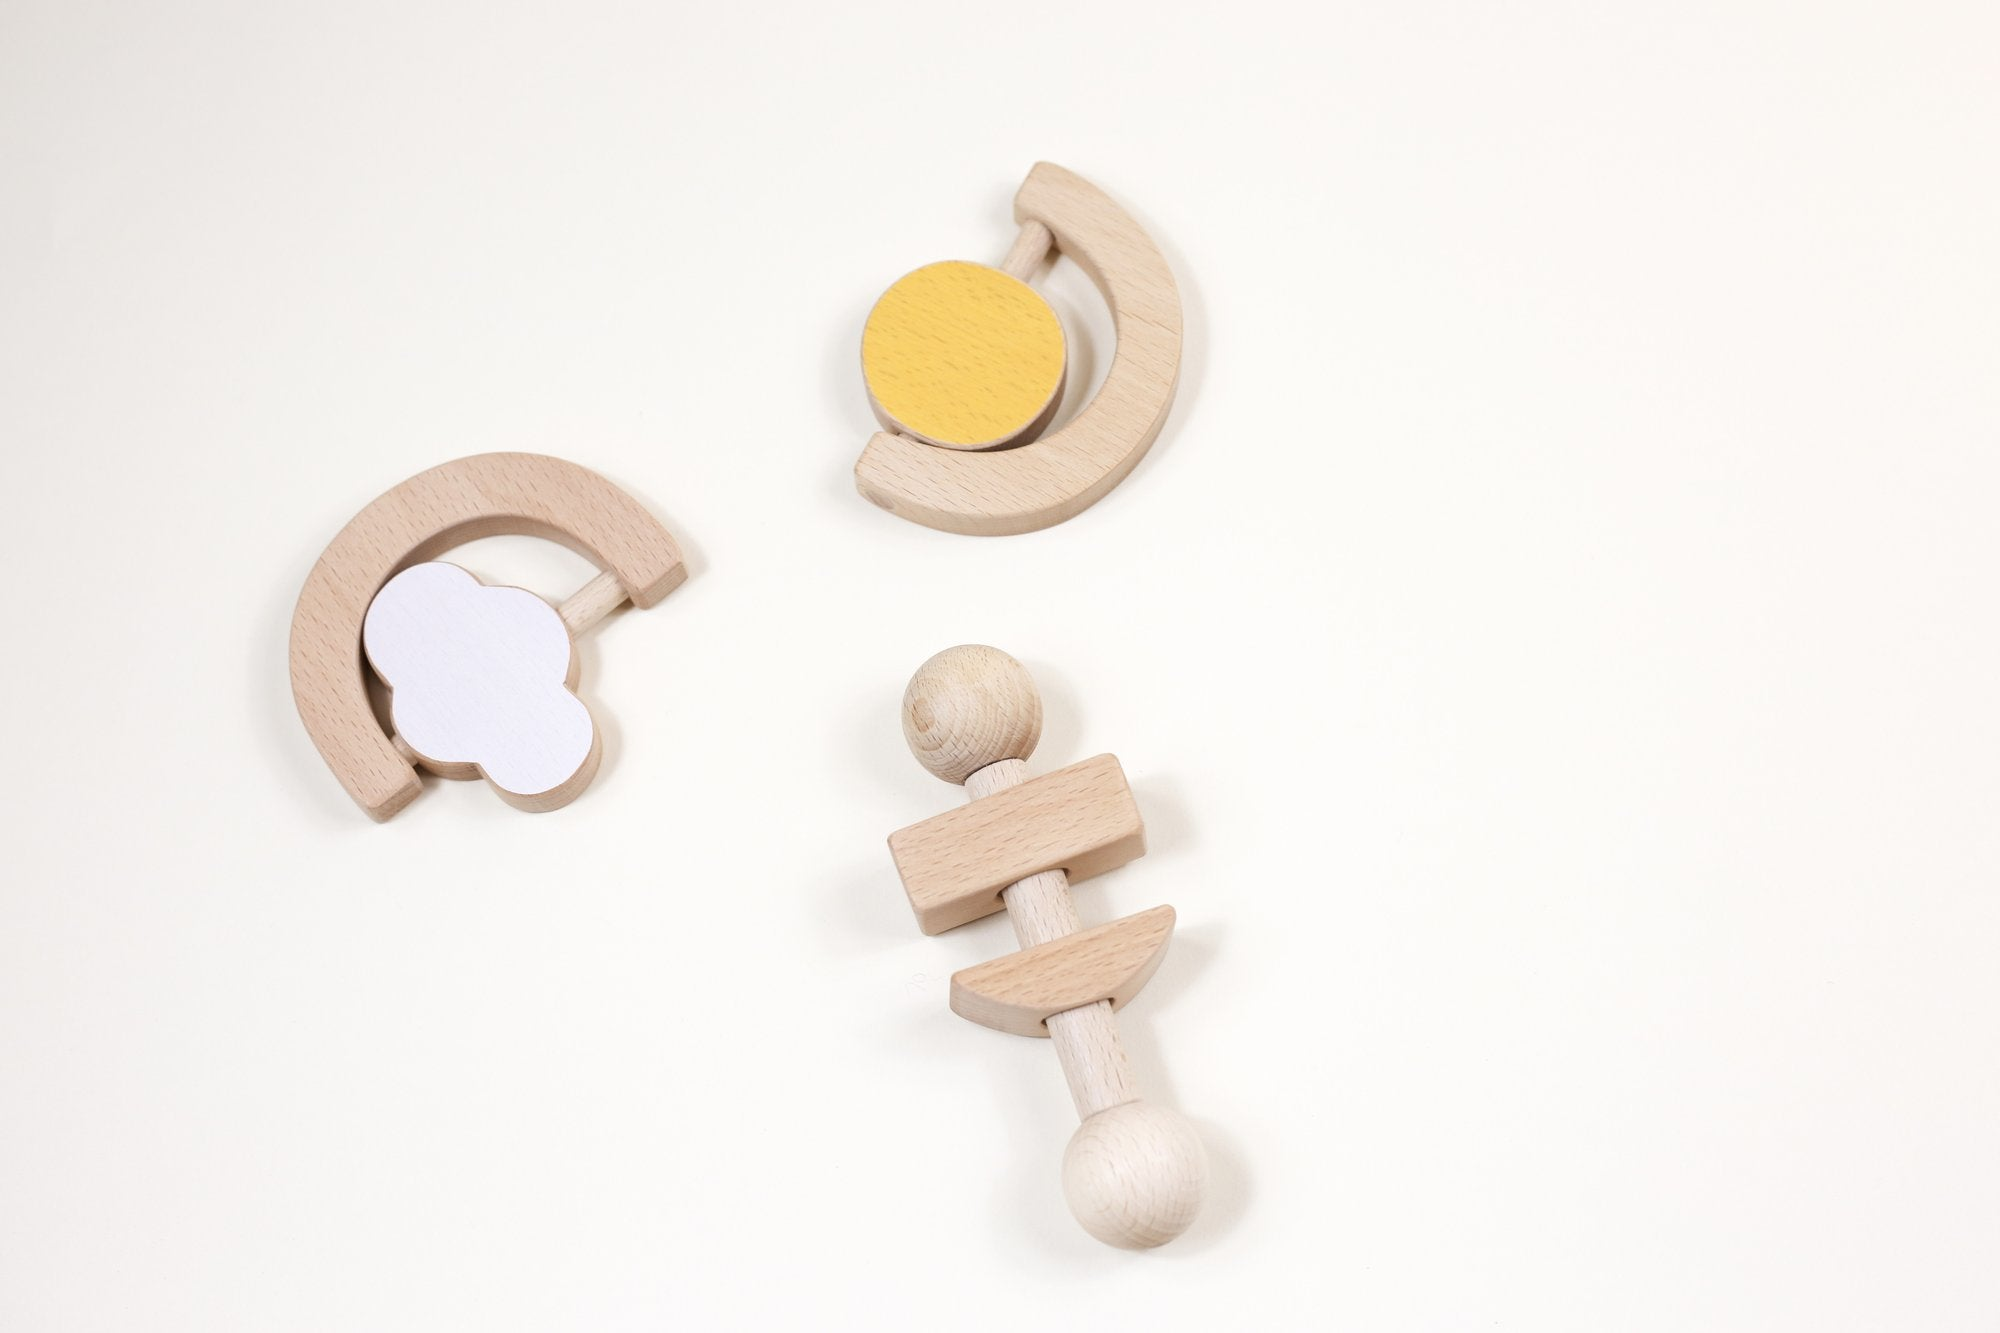 WOODEN TEETHERS & TOYS